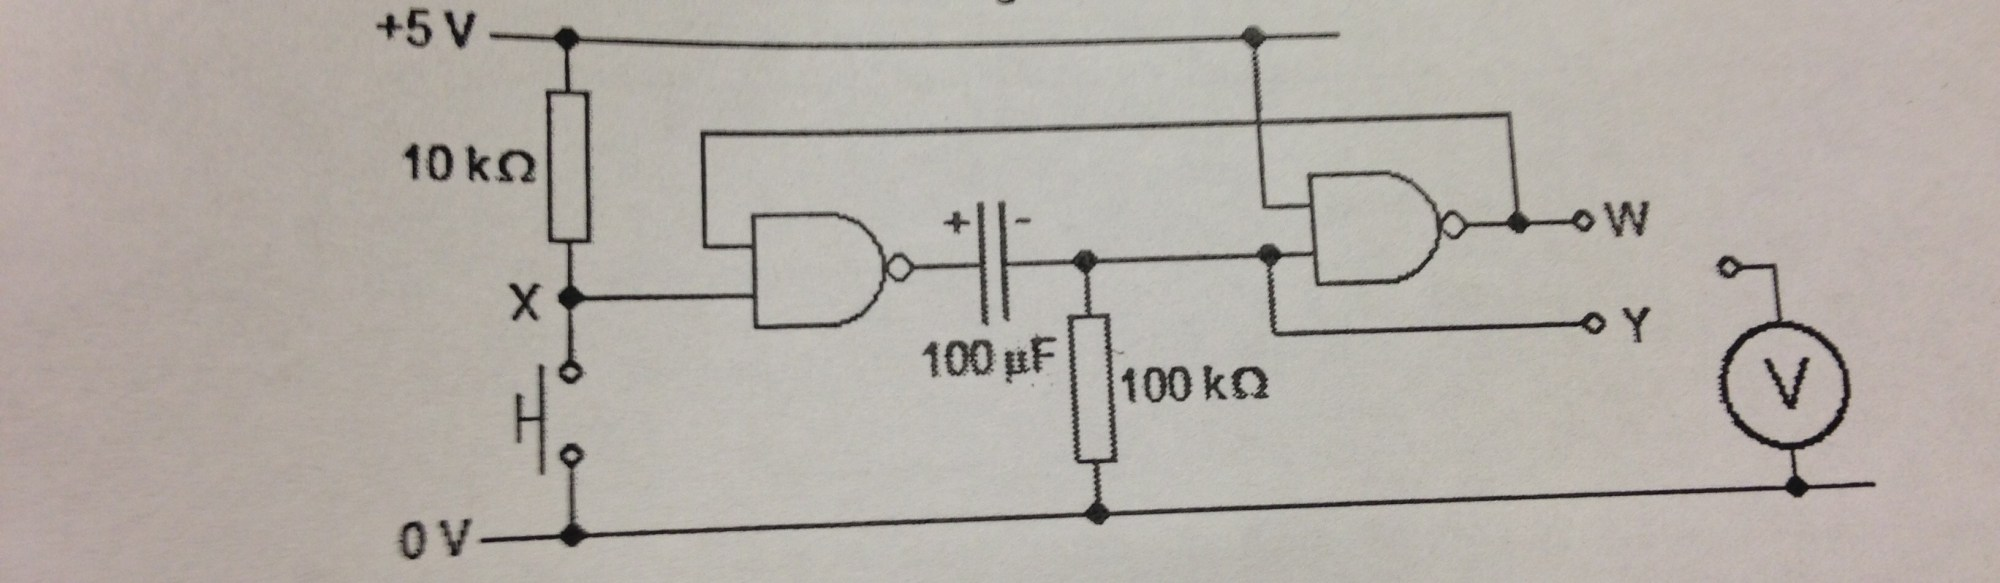 hight resolution of the diagram in question logic gates nand monostable